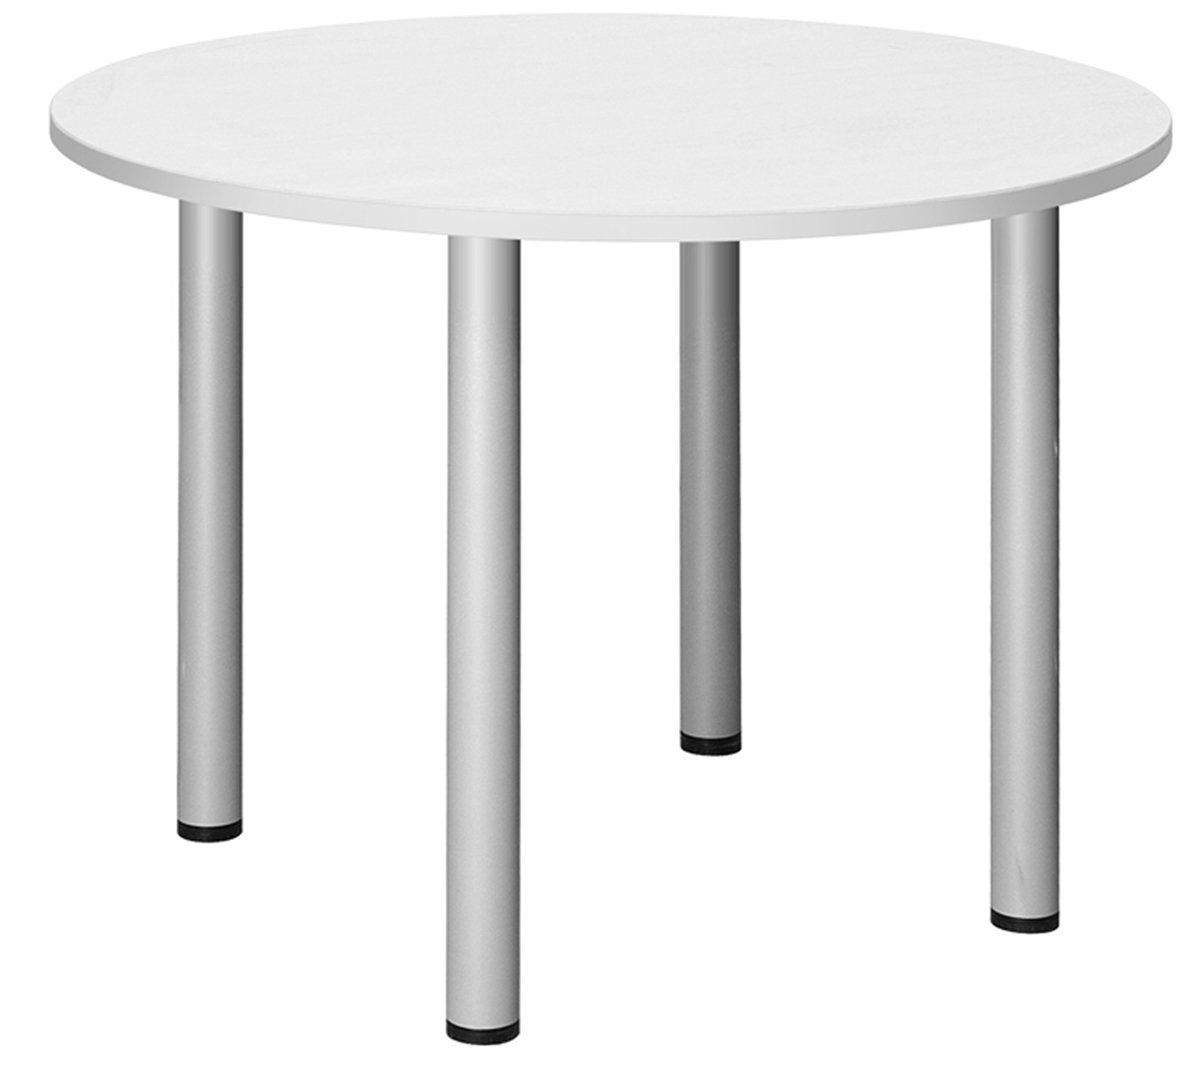 Office Hippo Fraction Plus Circular Meeting Table, 100 cm - White/Silver ZFPCMT10D/WHT